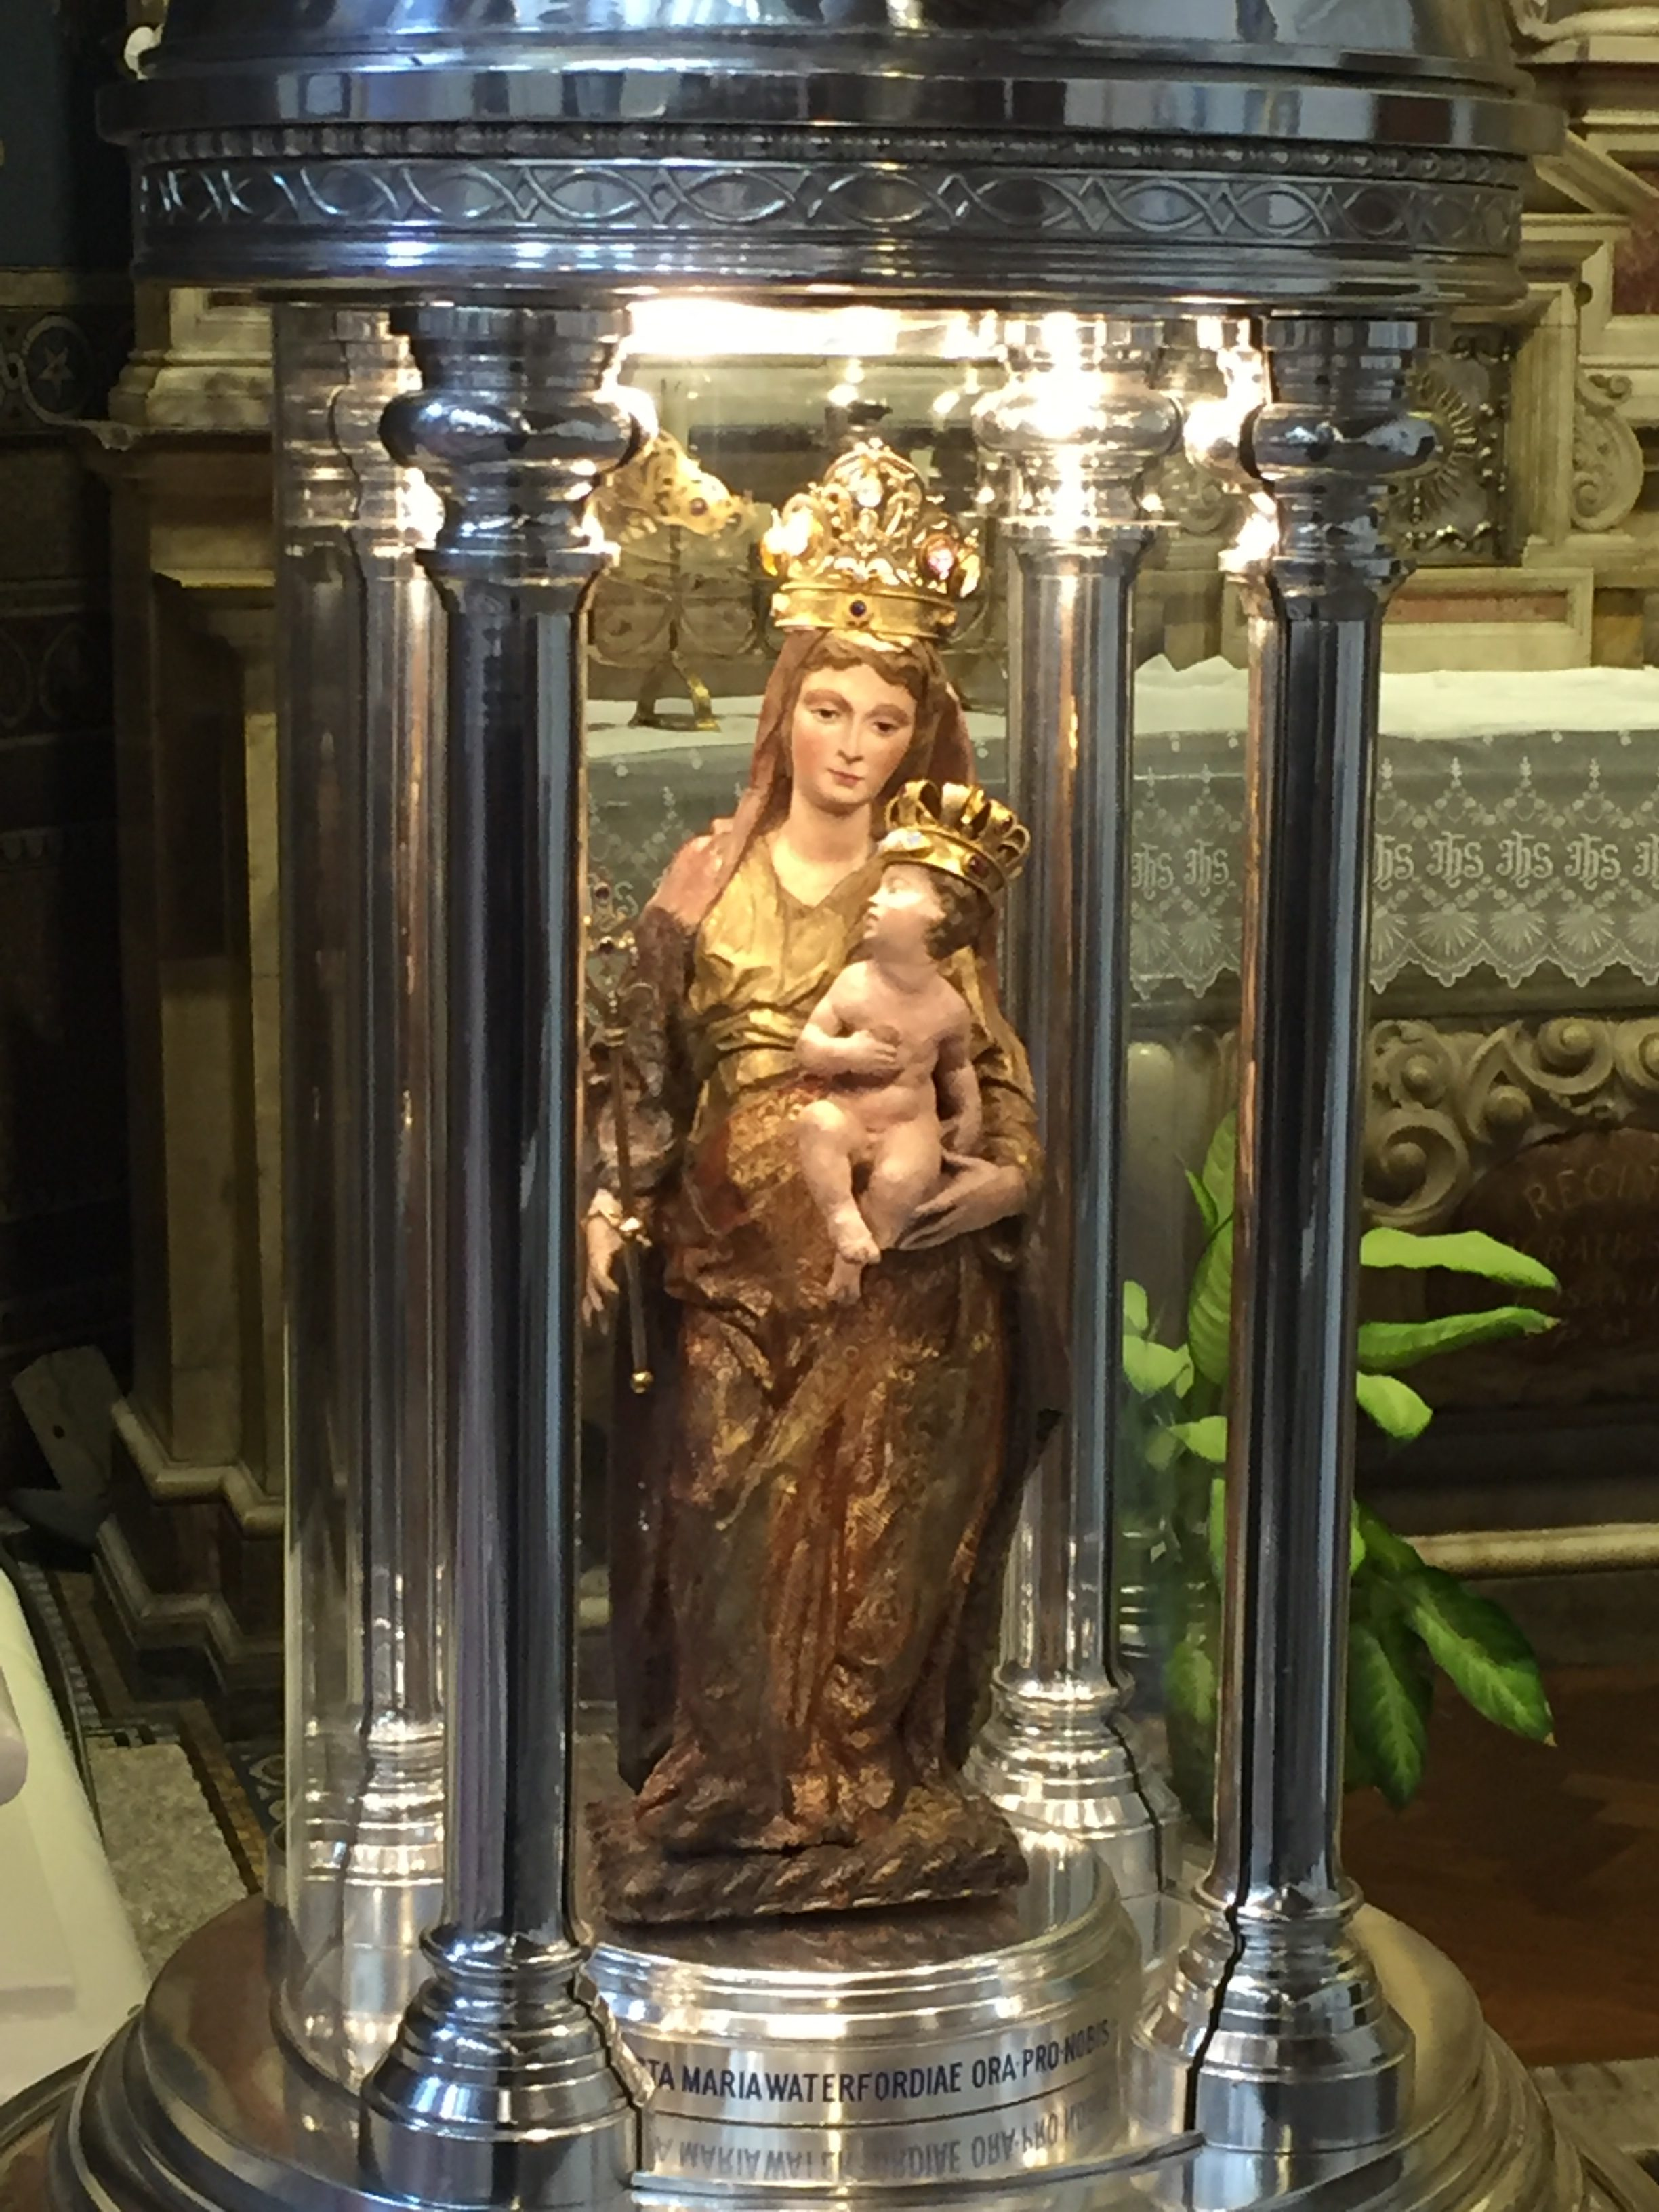 Our Lady of Waterford